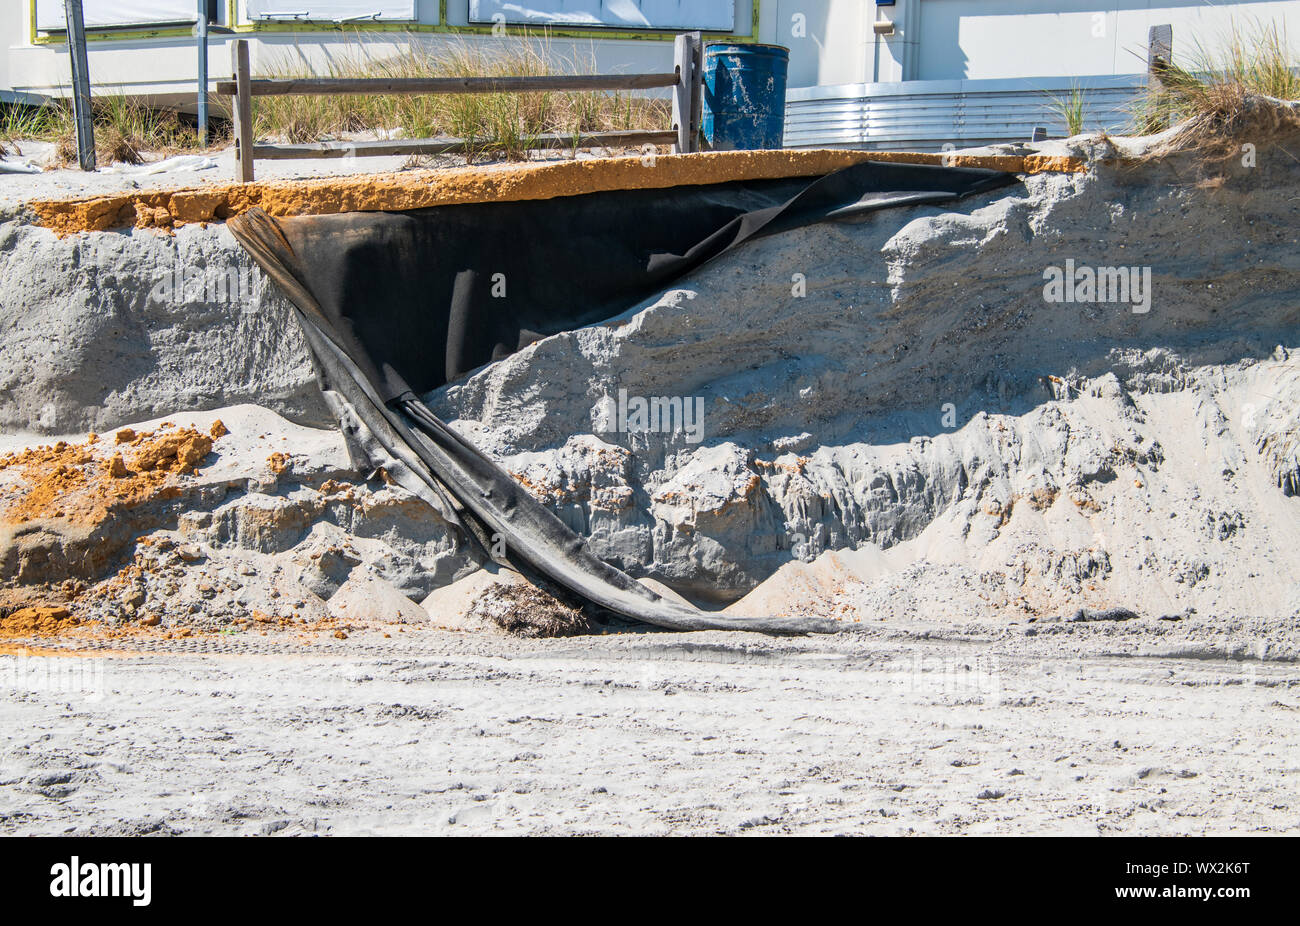 Erosion of the sand of the beach with destruction of a asphalt path after a hurricane and storm. Stock Photo